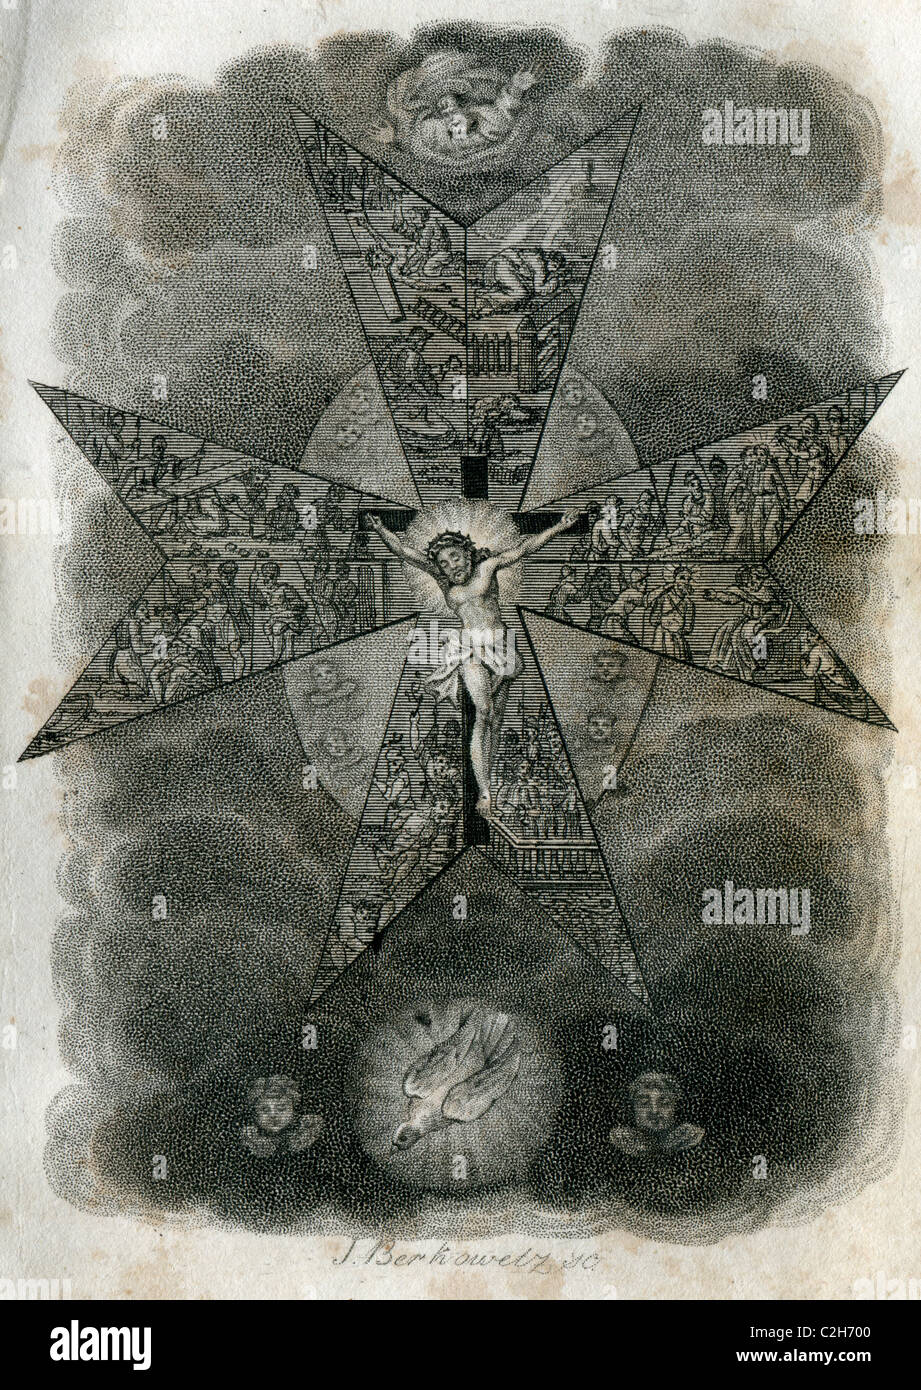 The Maltese cross (1843 J.Berkowetz Steel engraving) - Stock Image